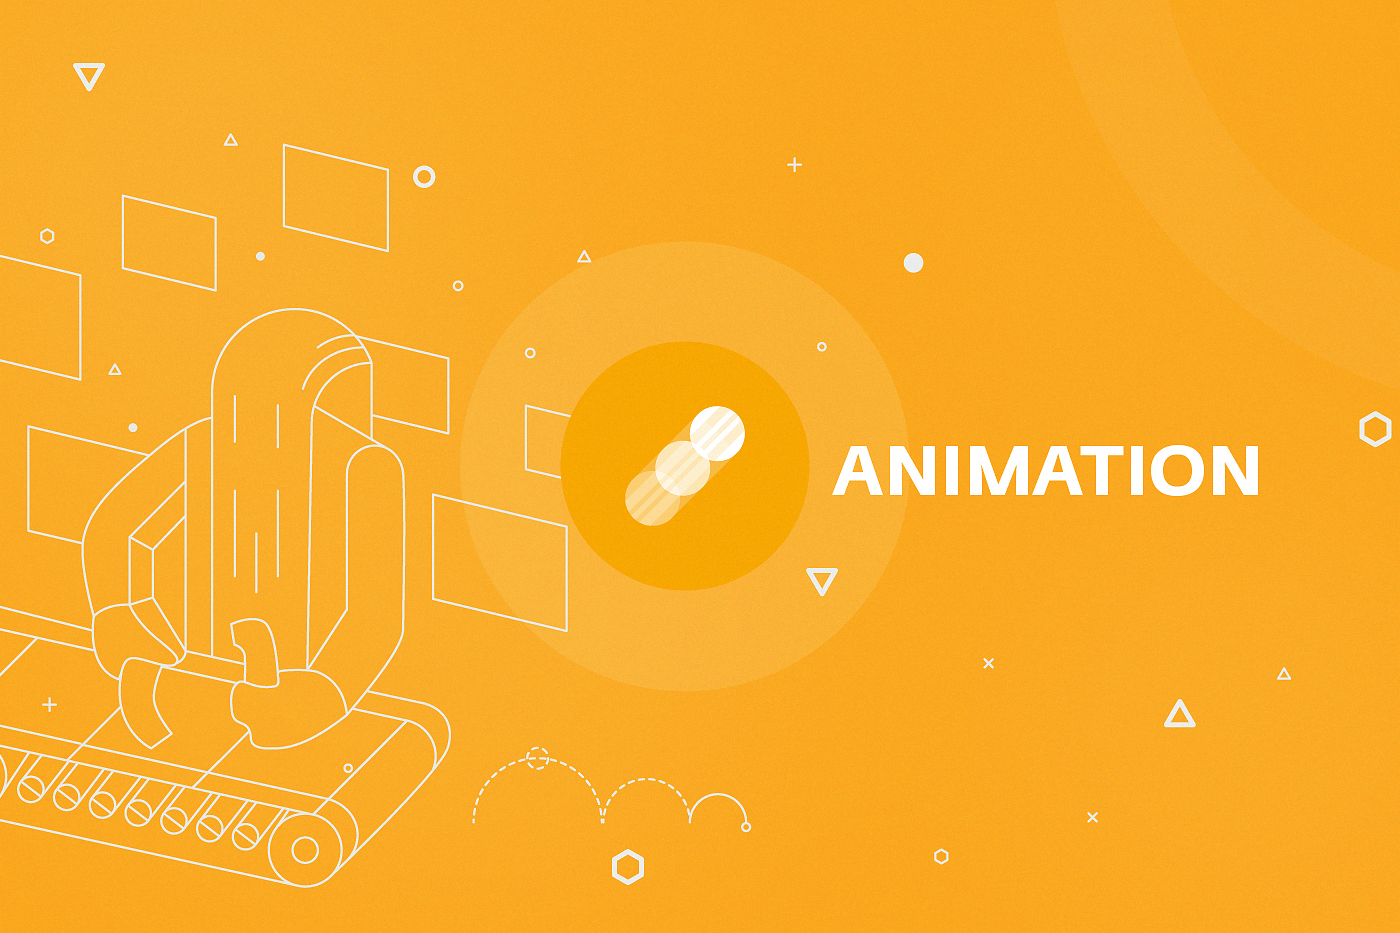 animation eng - Art of 3D Gifs with Alexandra Katz